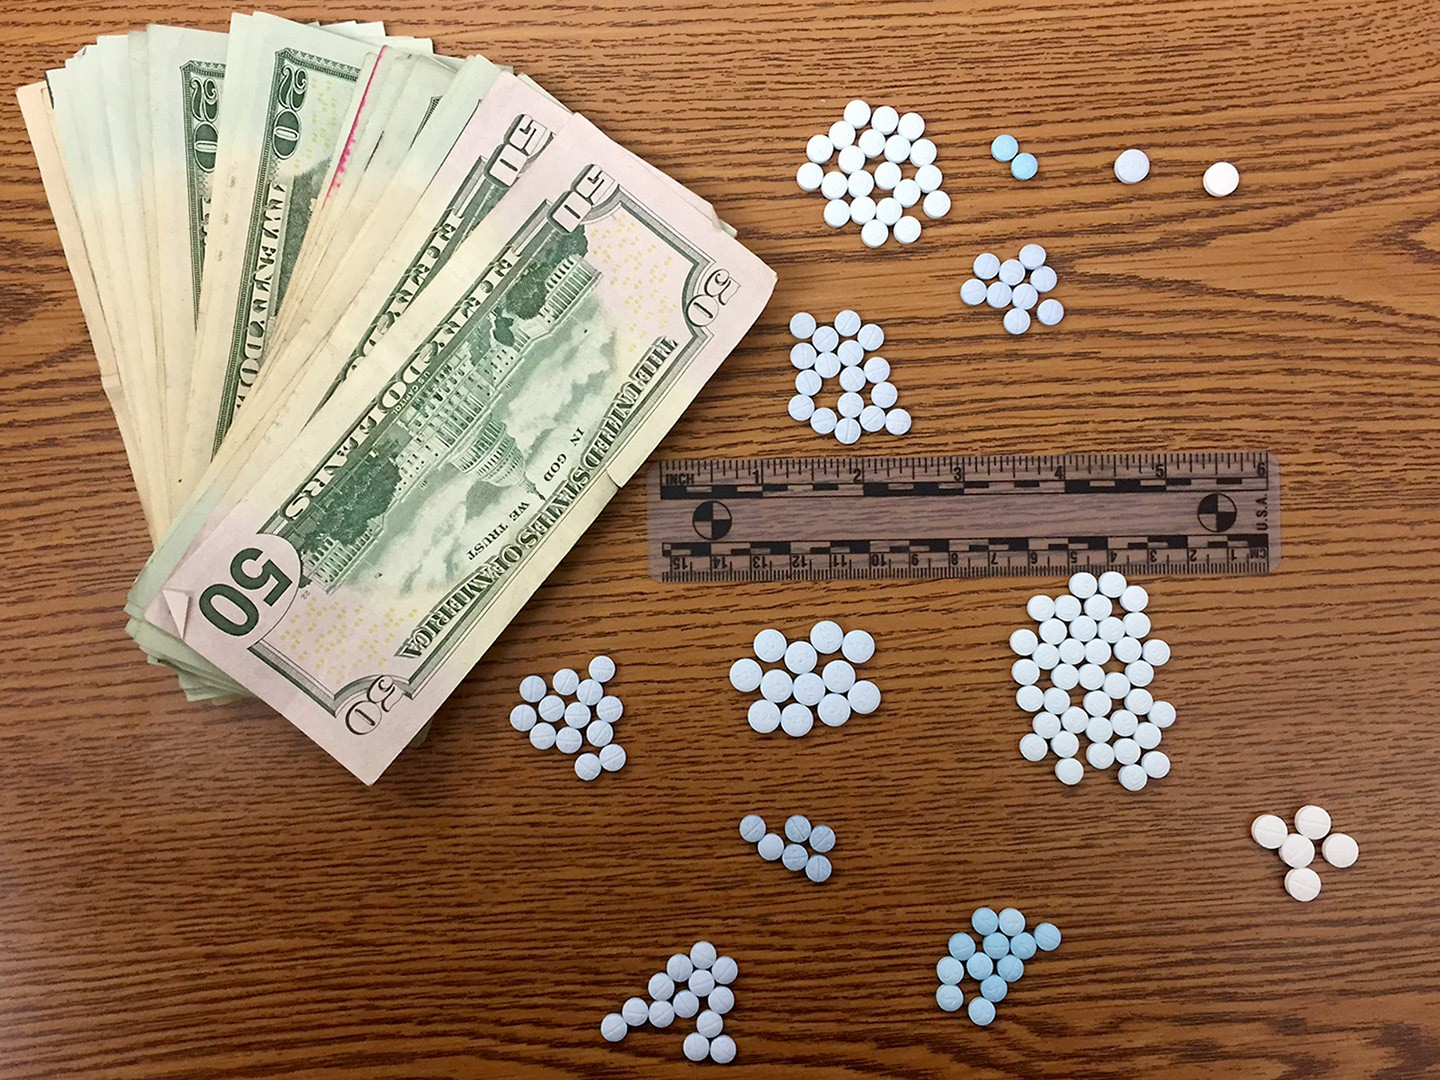 Police displayed cash and money seized from two men arrested on drug charges Friday.